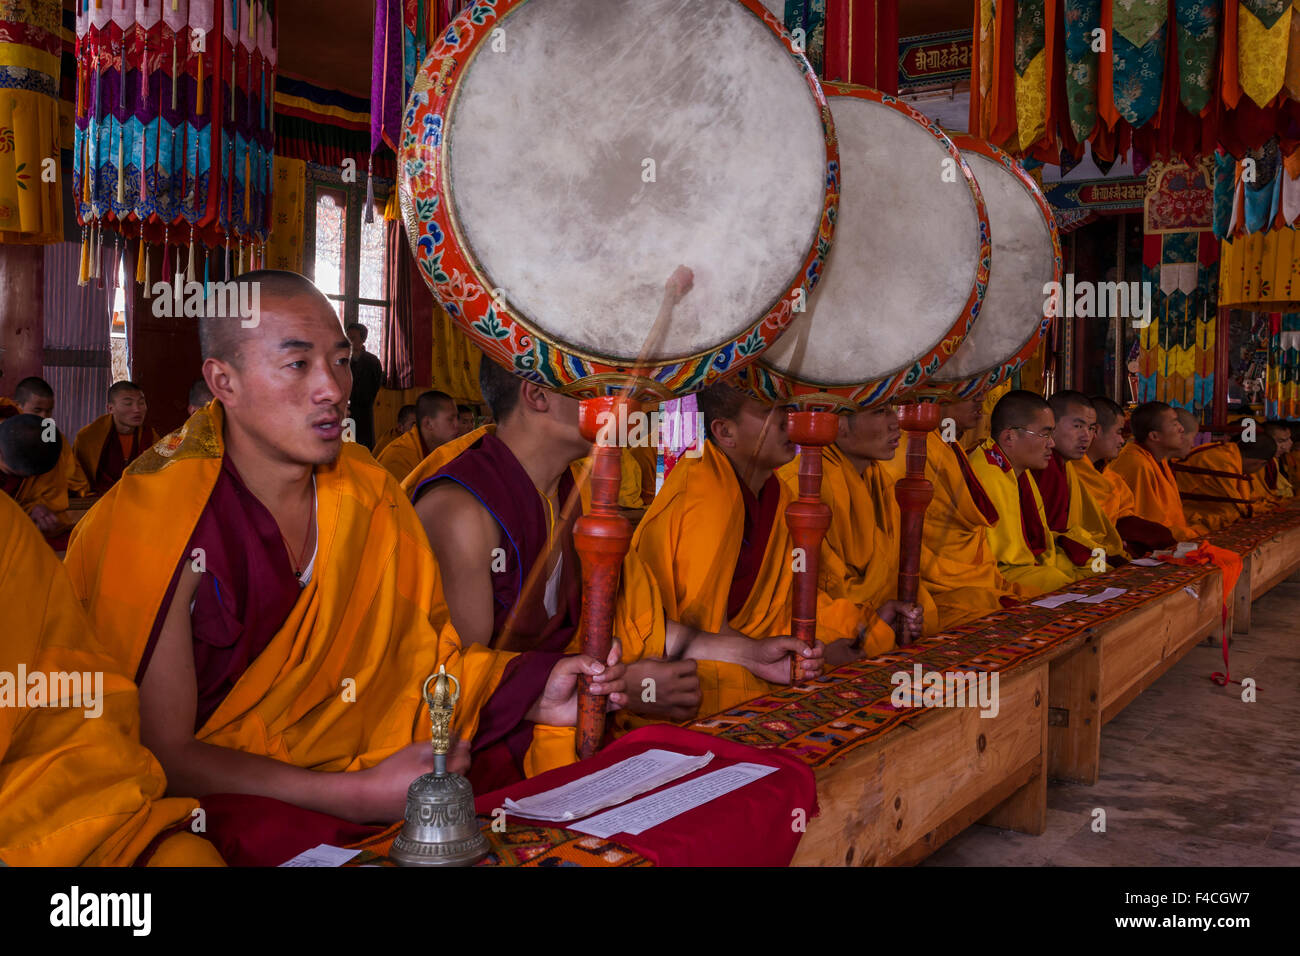 Bhutan, Jakar, Monks chanting and playing drums - Stock Image